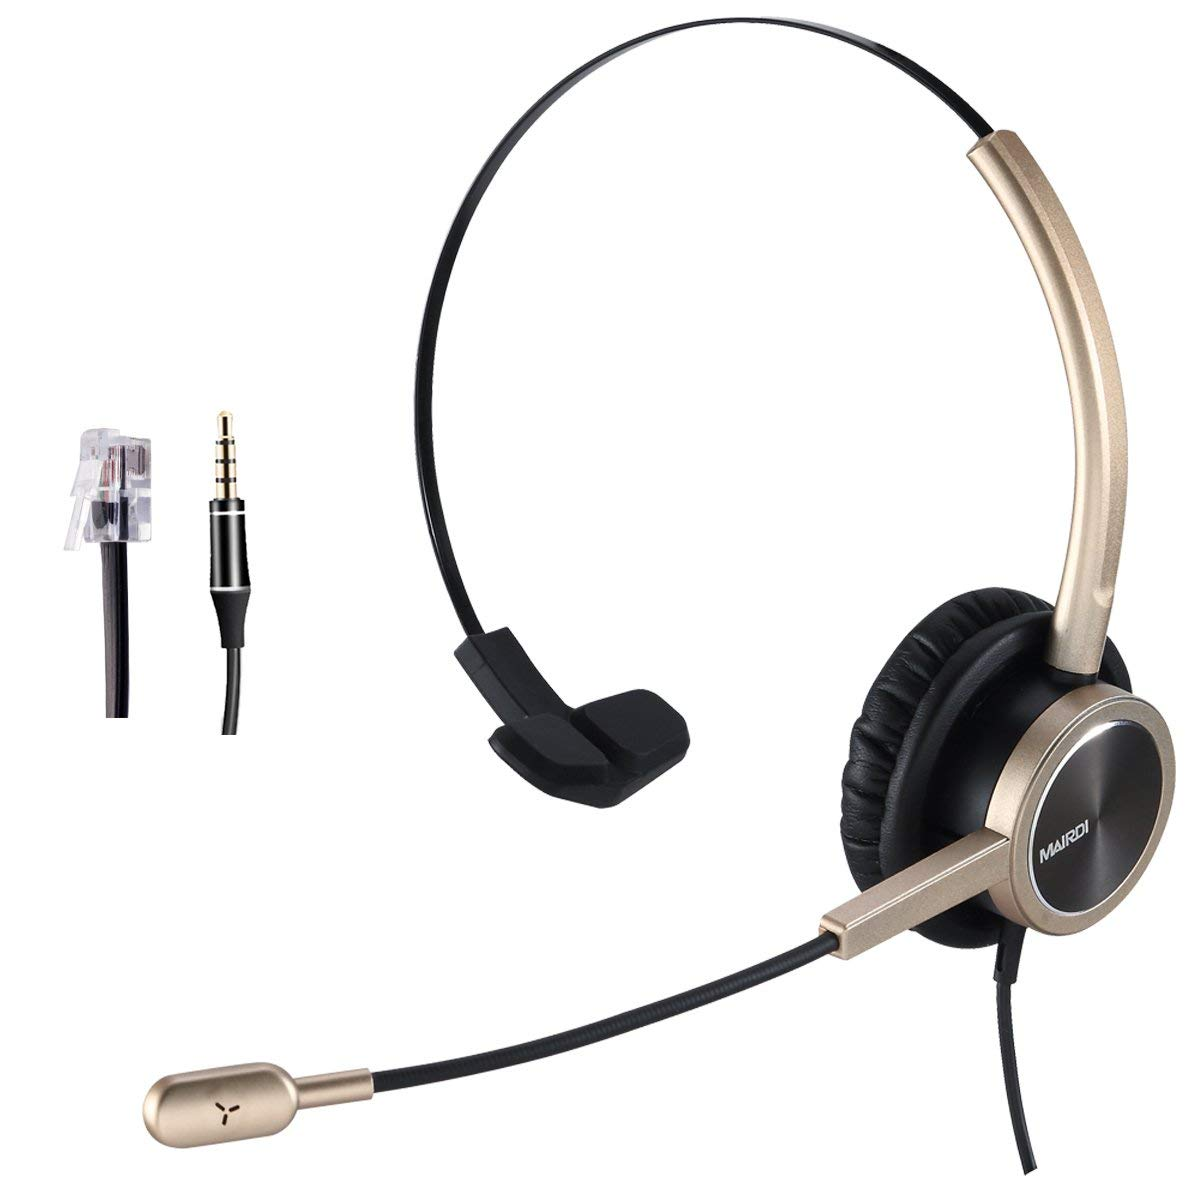 41d2a4a87db Get Quotations · Telephone Headset with RJ9 for Cisco Phone Call Center  Headset With Noise Cancelling Microphone With Extra